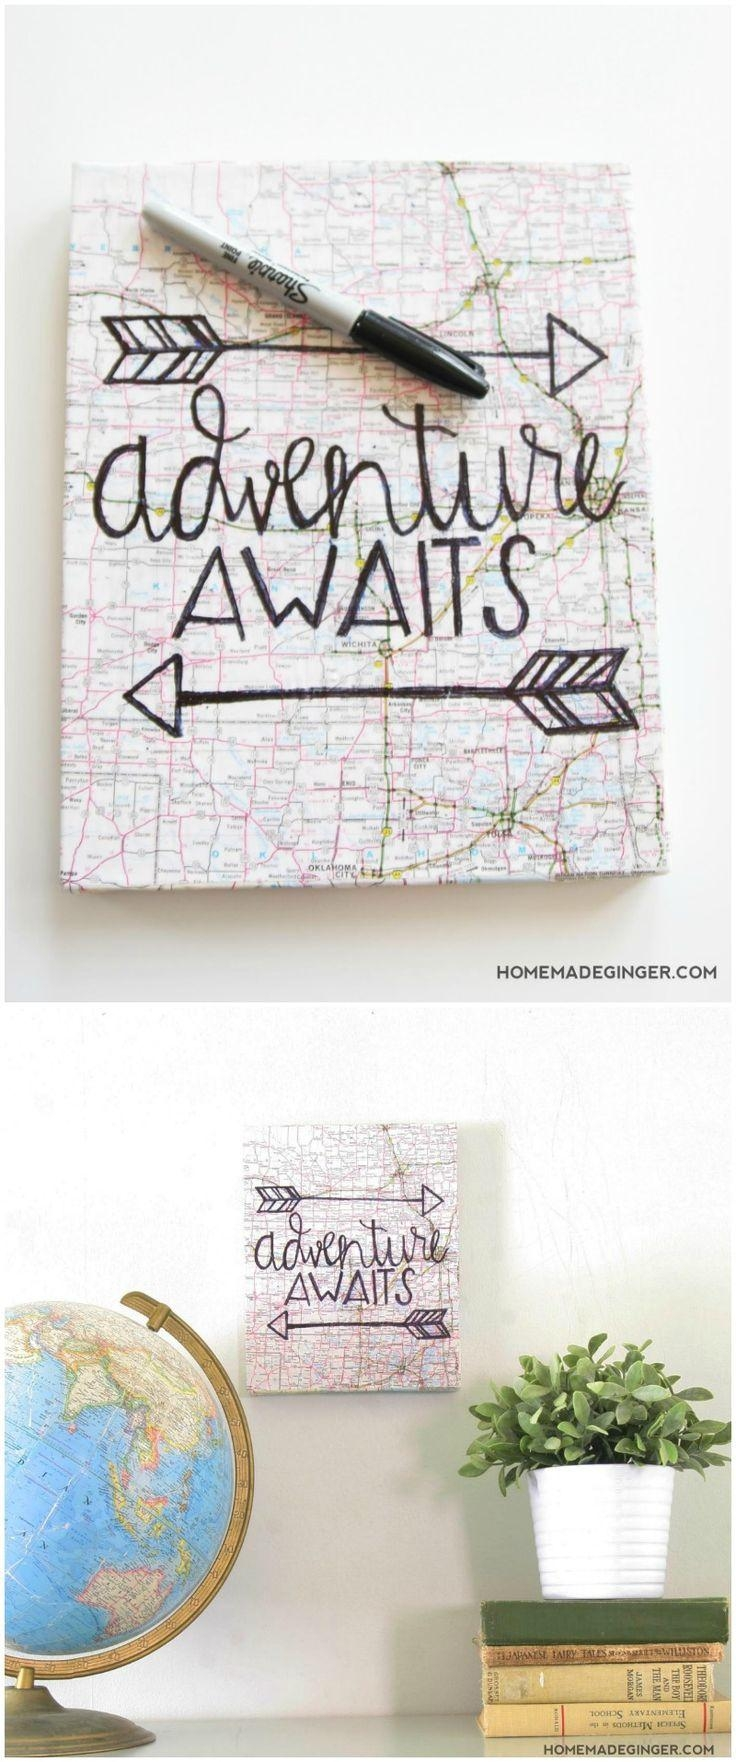 Best 25+ Diy Canvas Art Ideas On Pinterest | Diy Canvas, Diy Pertaining To Diy Pinterest Canvas Art (View 8 of 20)